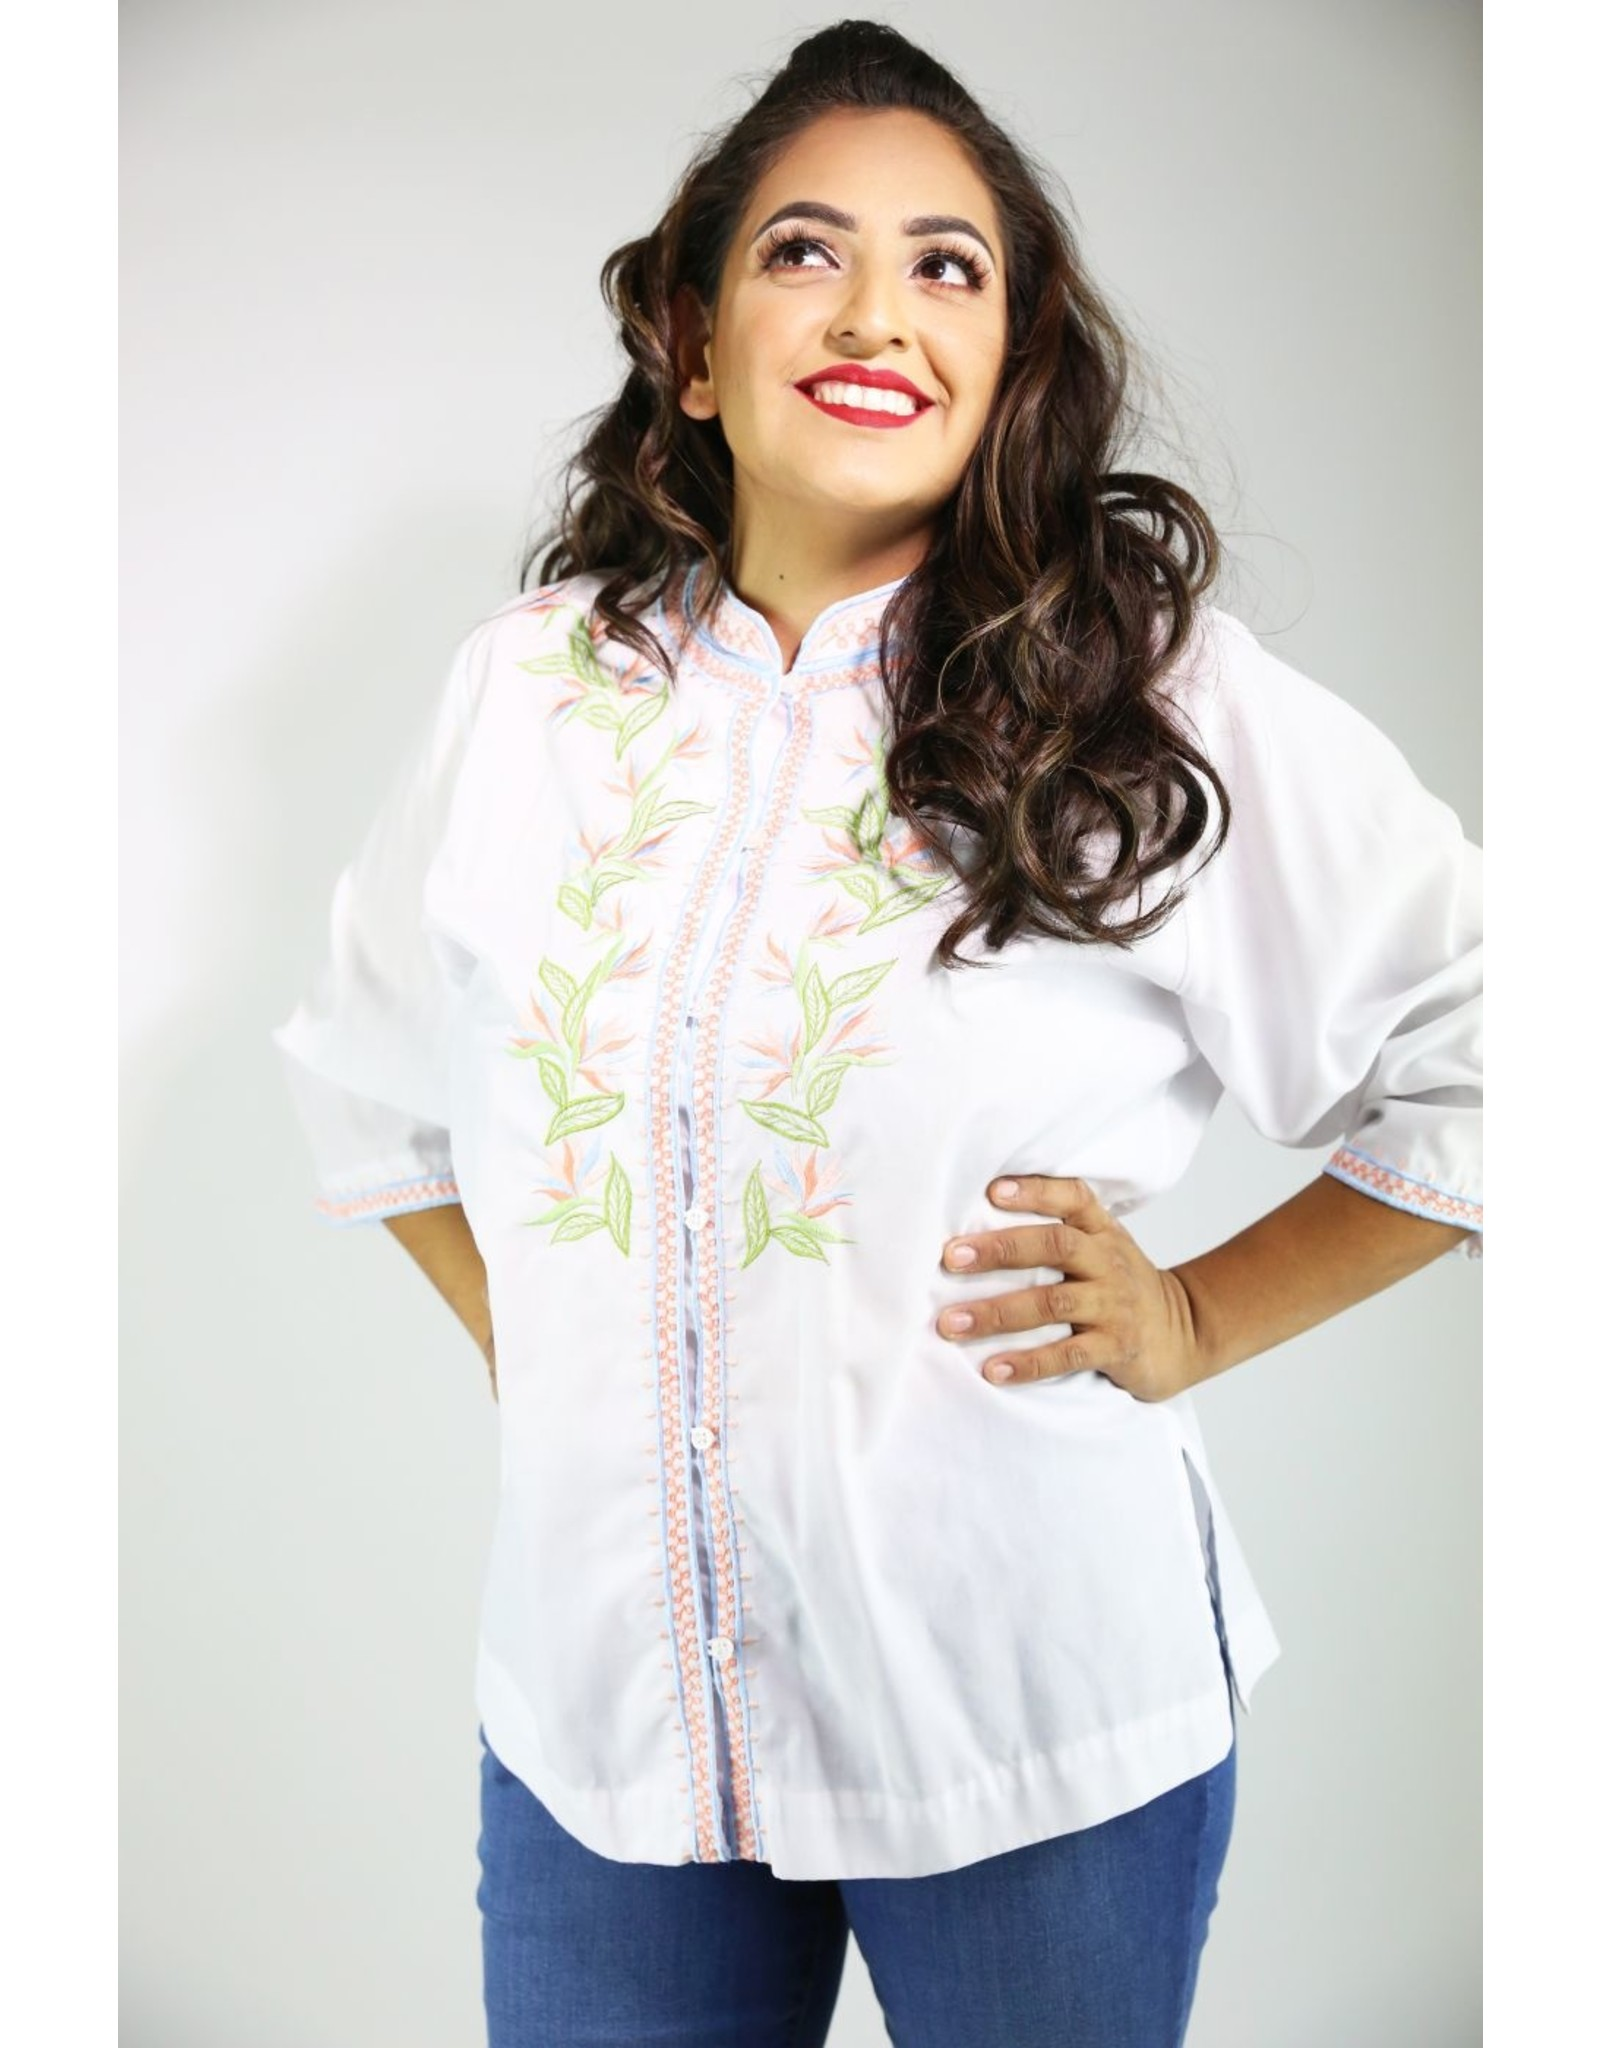 1980's Plus Size White Top w/ Embroidery